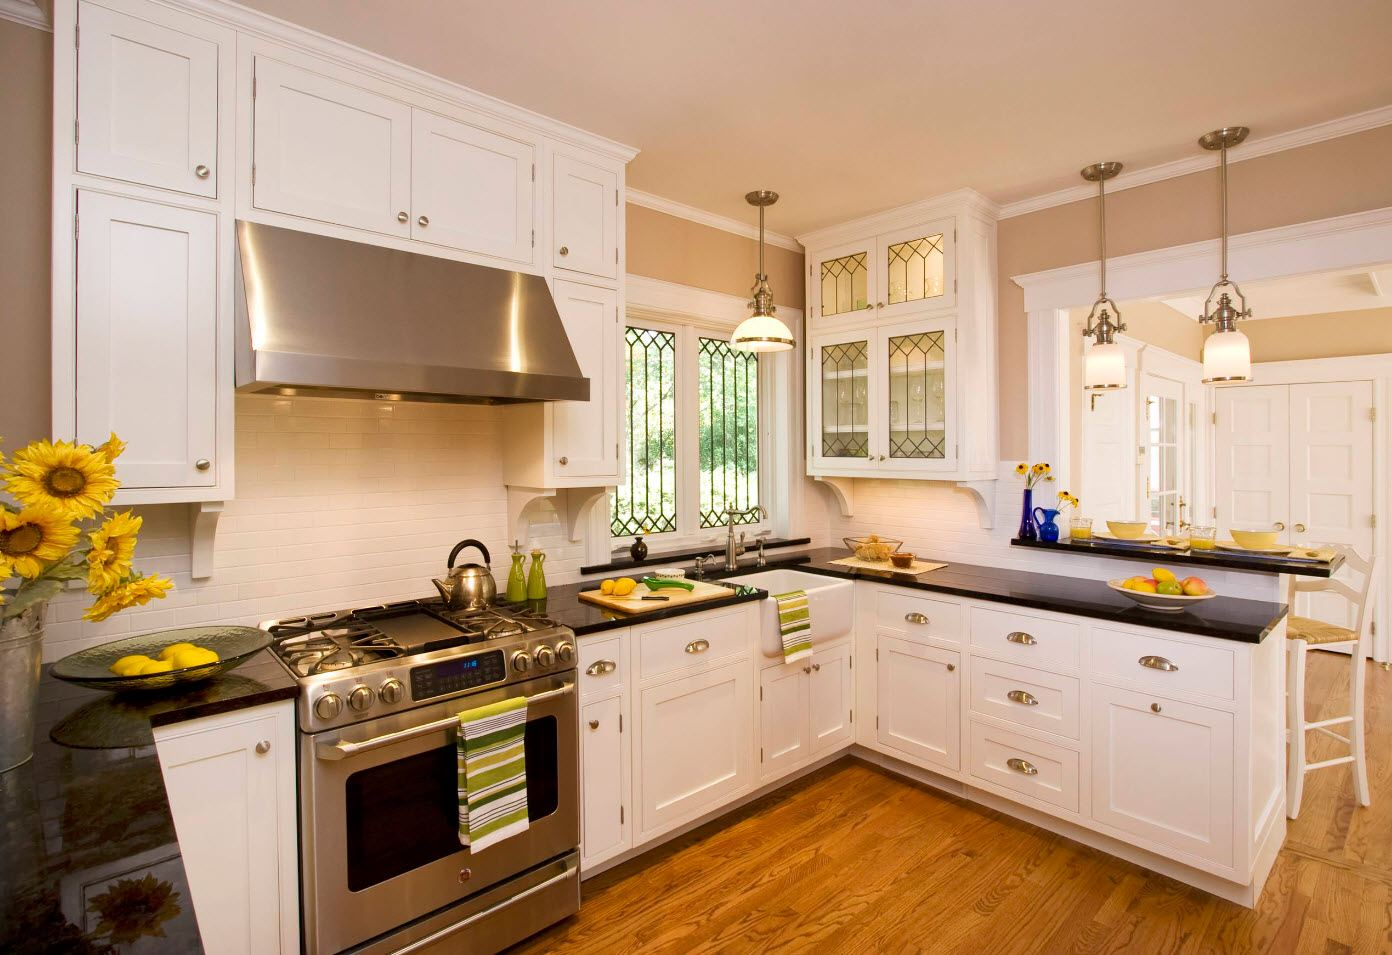 Classic kitchen in white with exposed steel luster of appliances